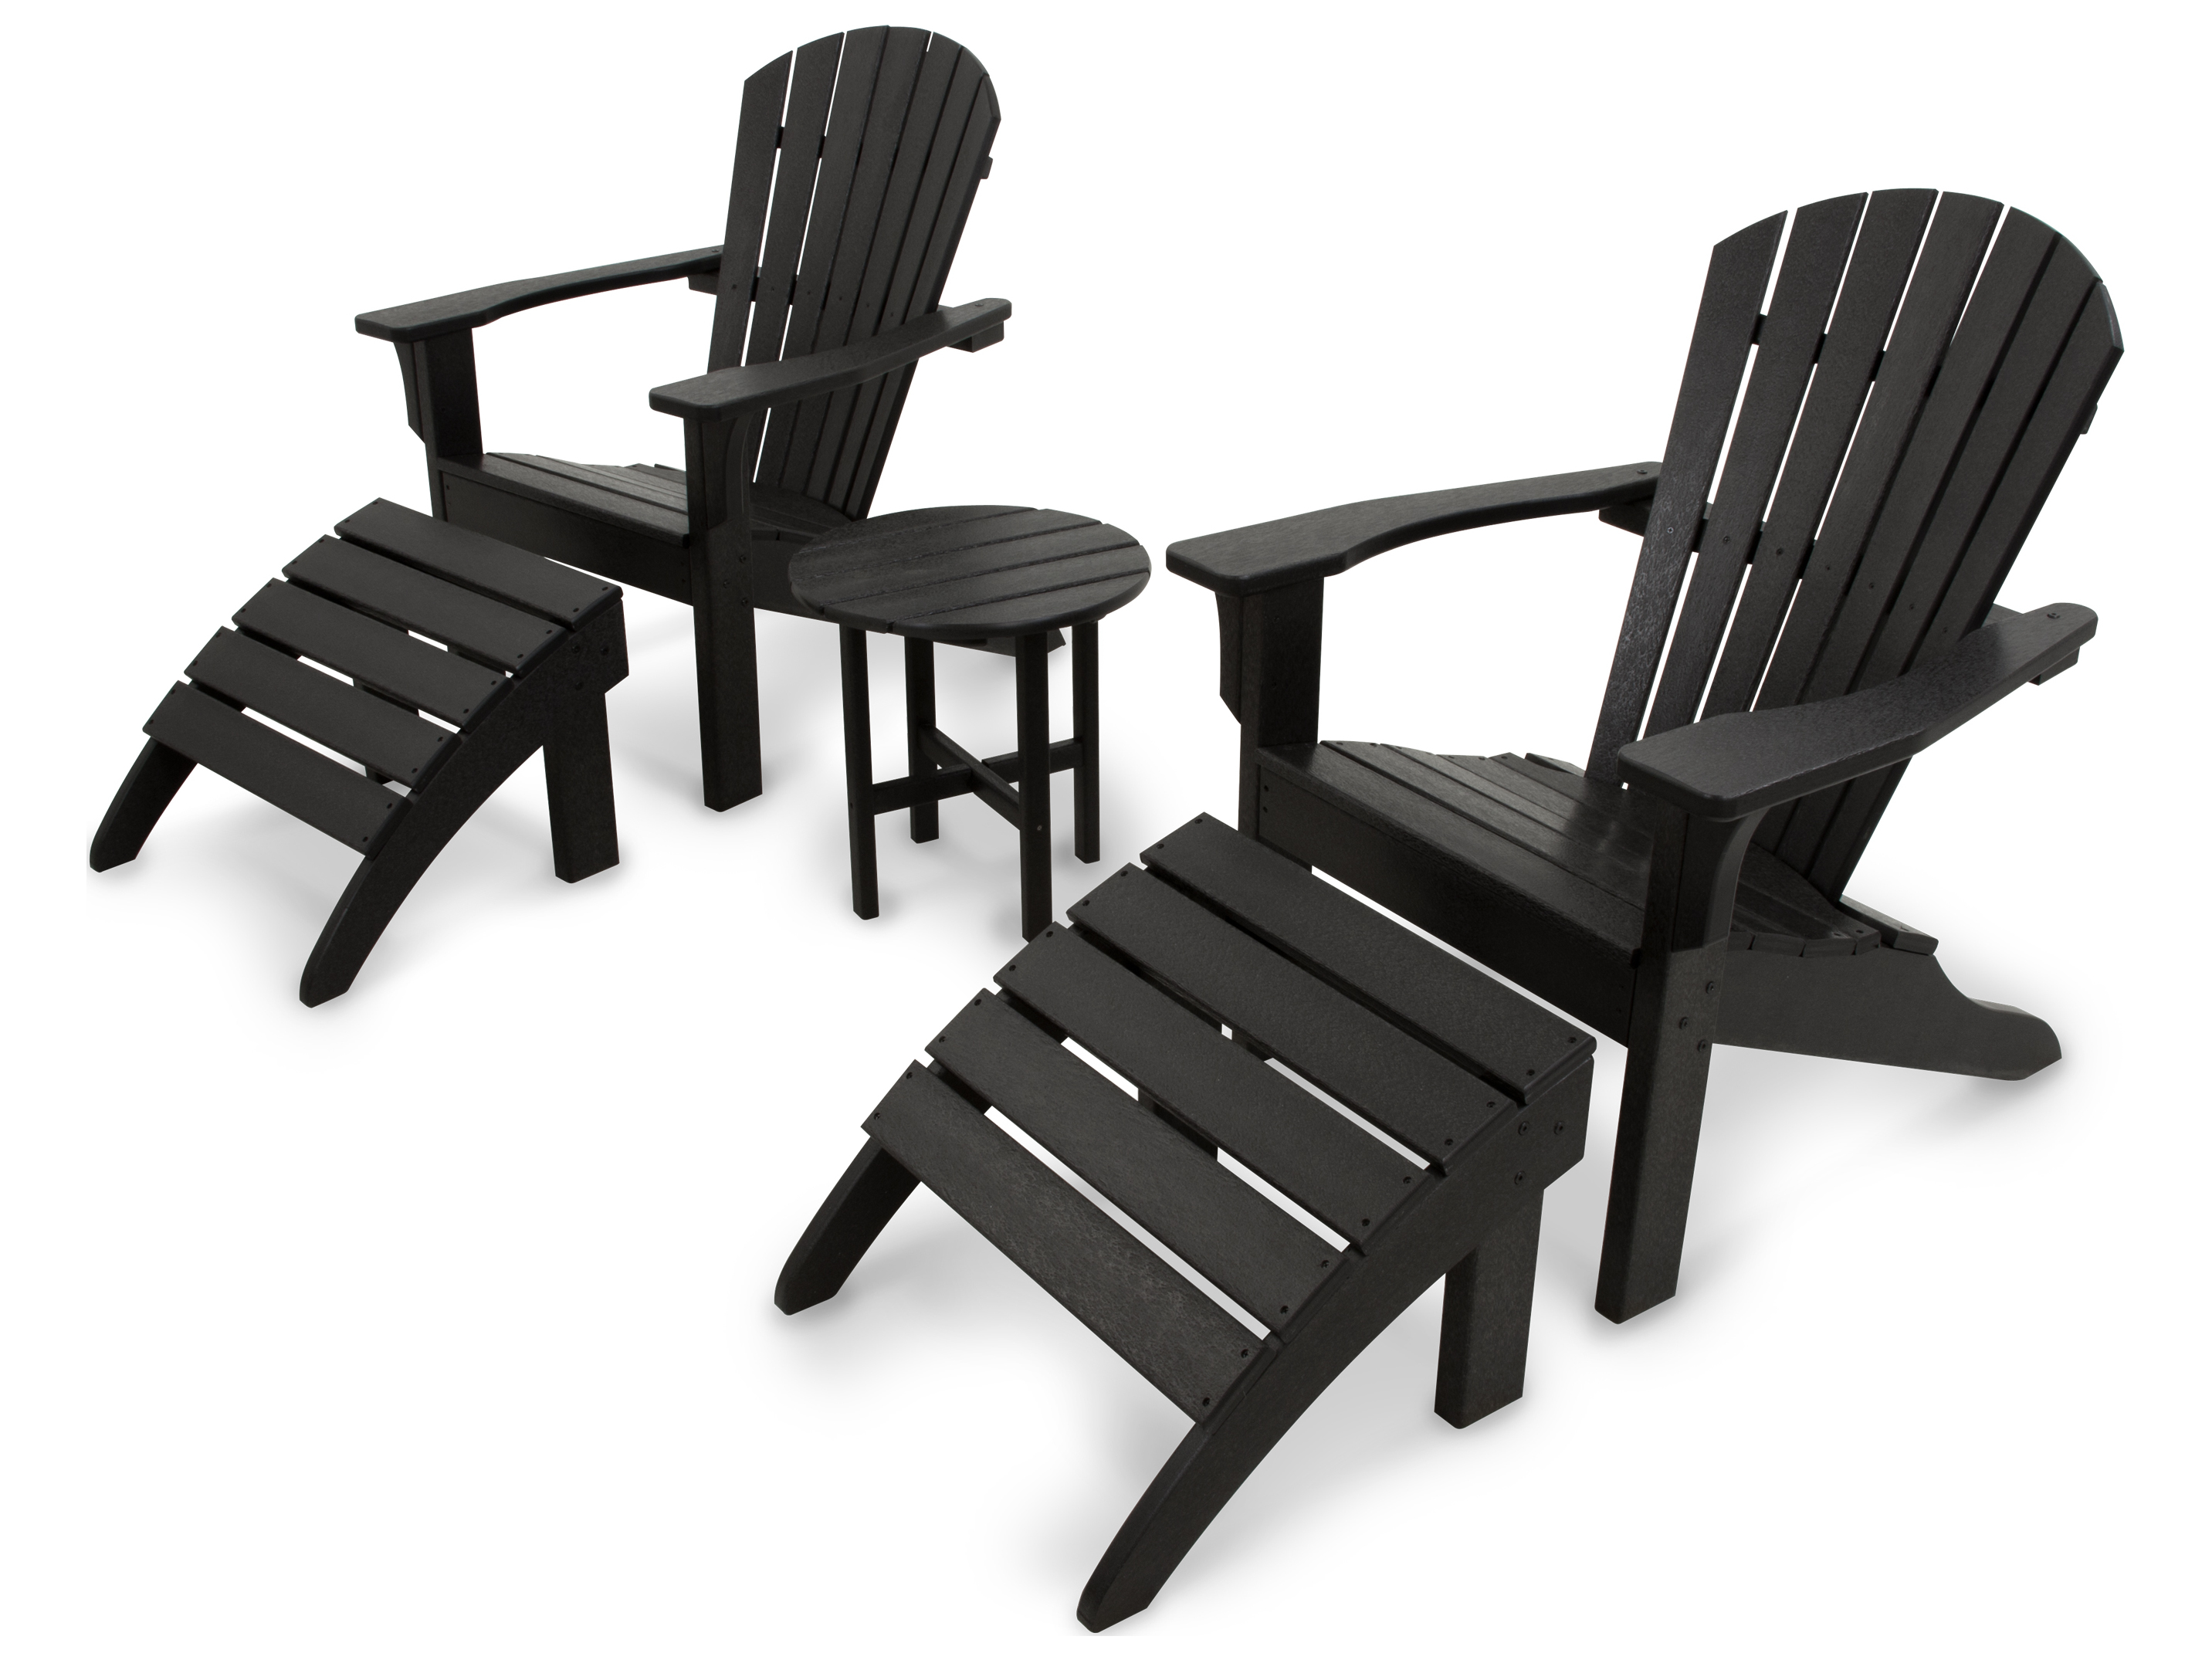 Polywood 174 Ivy Terrace Recycled Plastic Lounge Set Pwivs1171